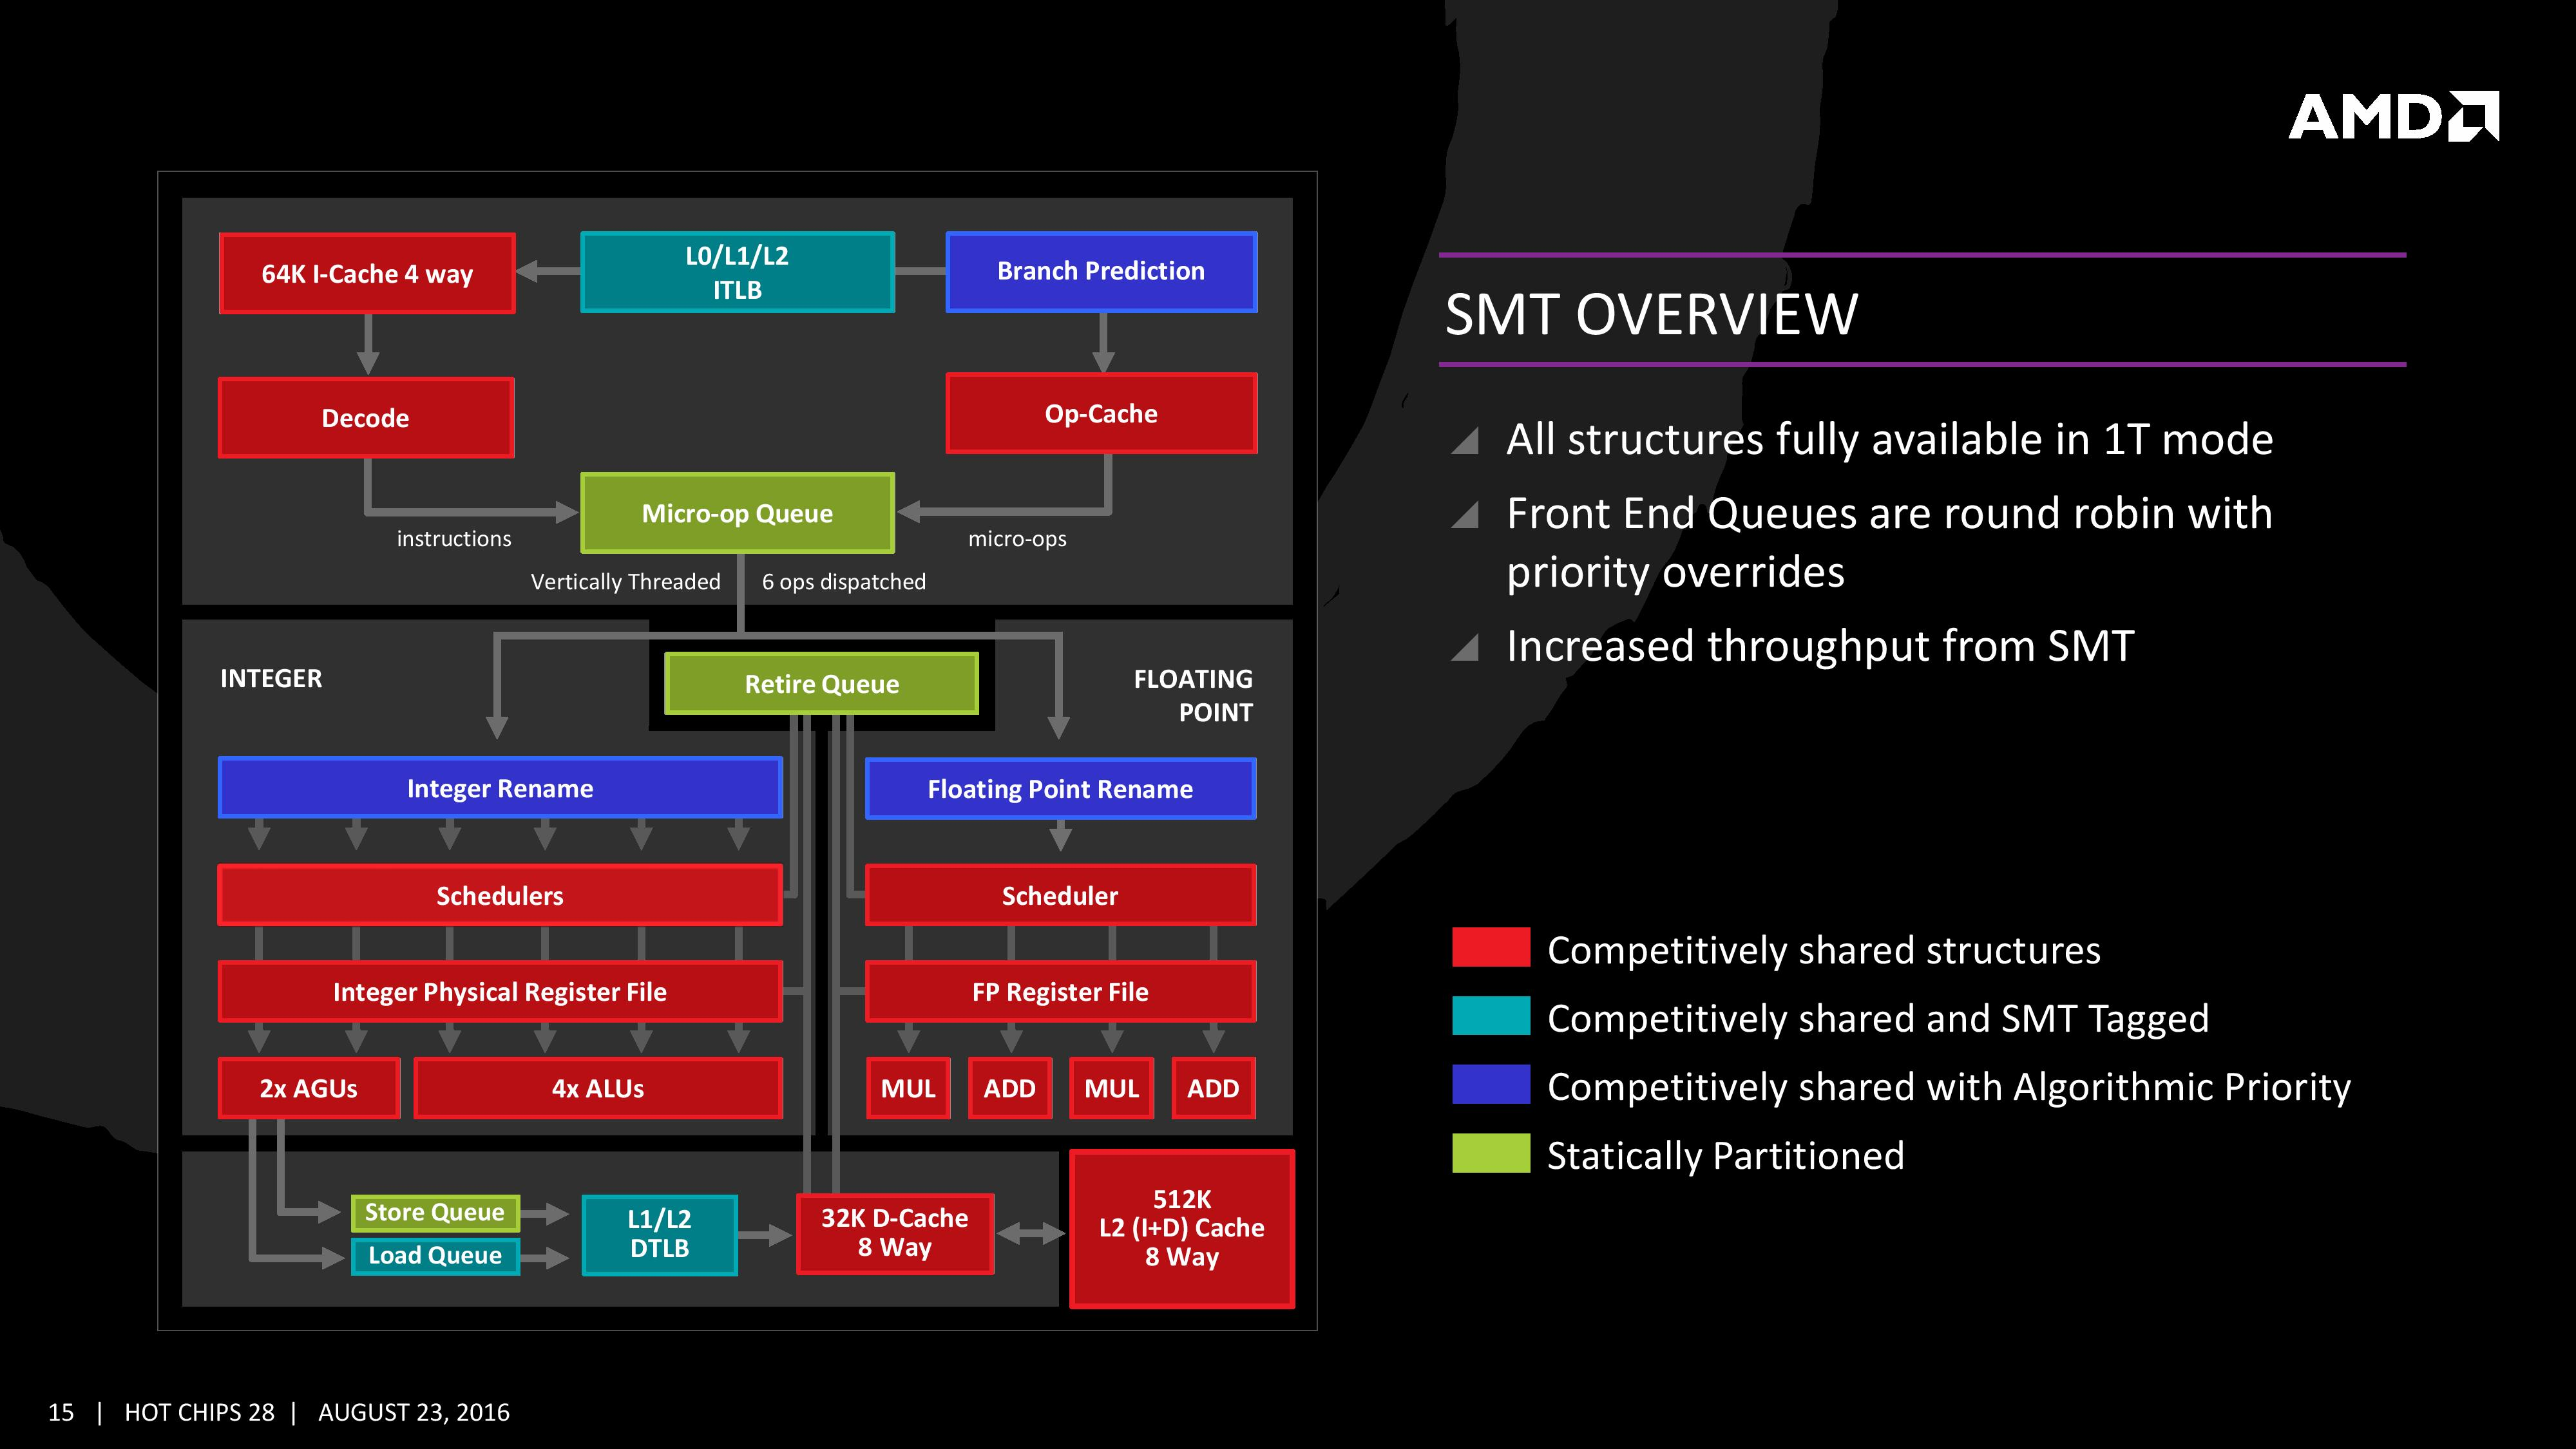 Simultaneous MultiThreading (SMT) and New Instructions - The